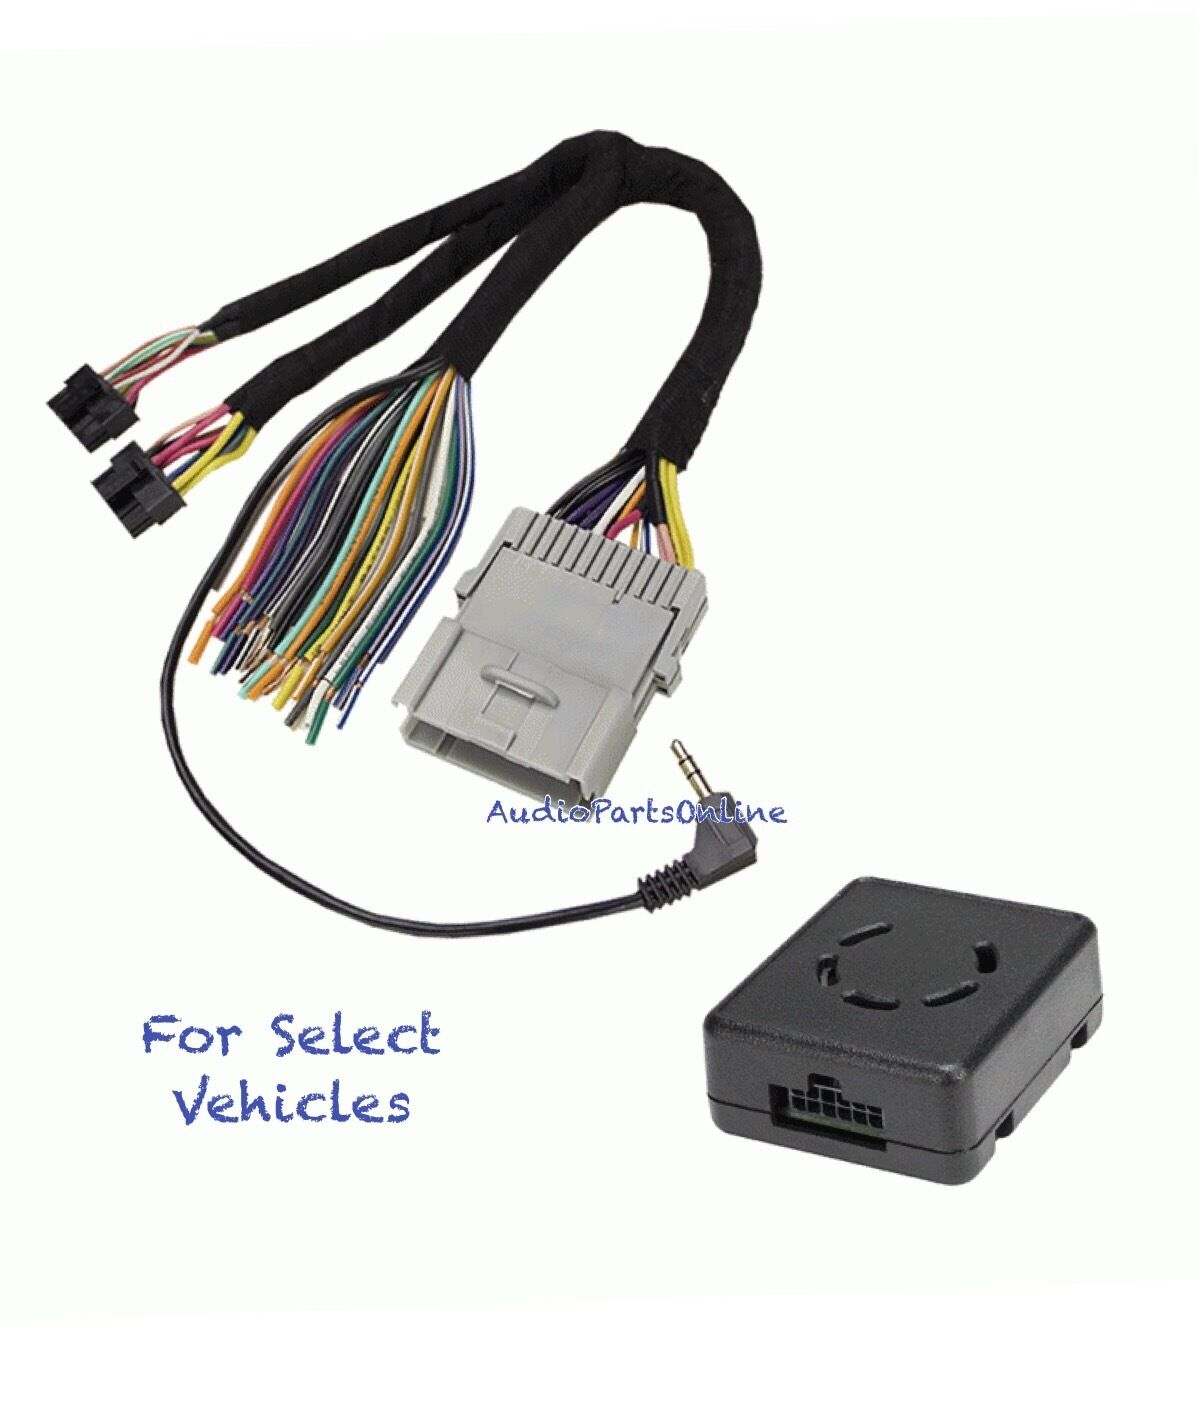 Amp/Bose/No Bose/Chimes Car Stereo Wire Harness Adapter Interface for select